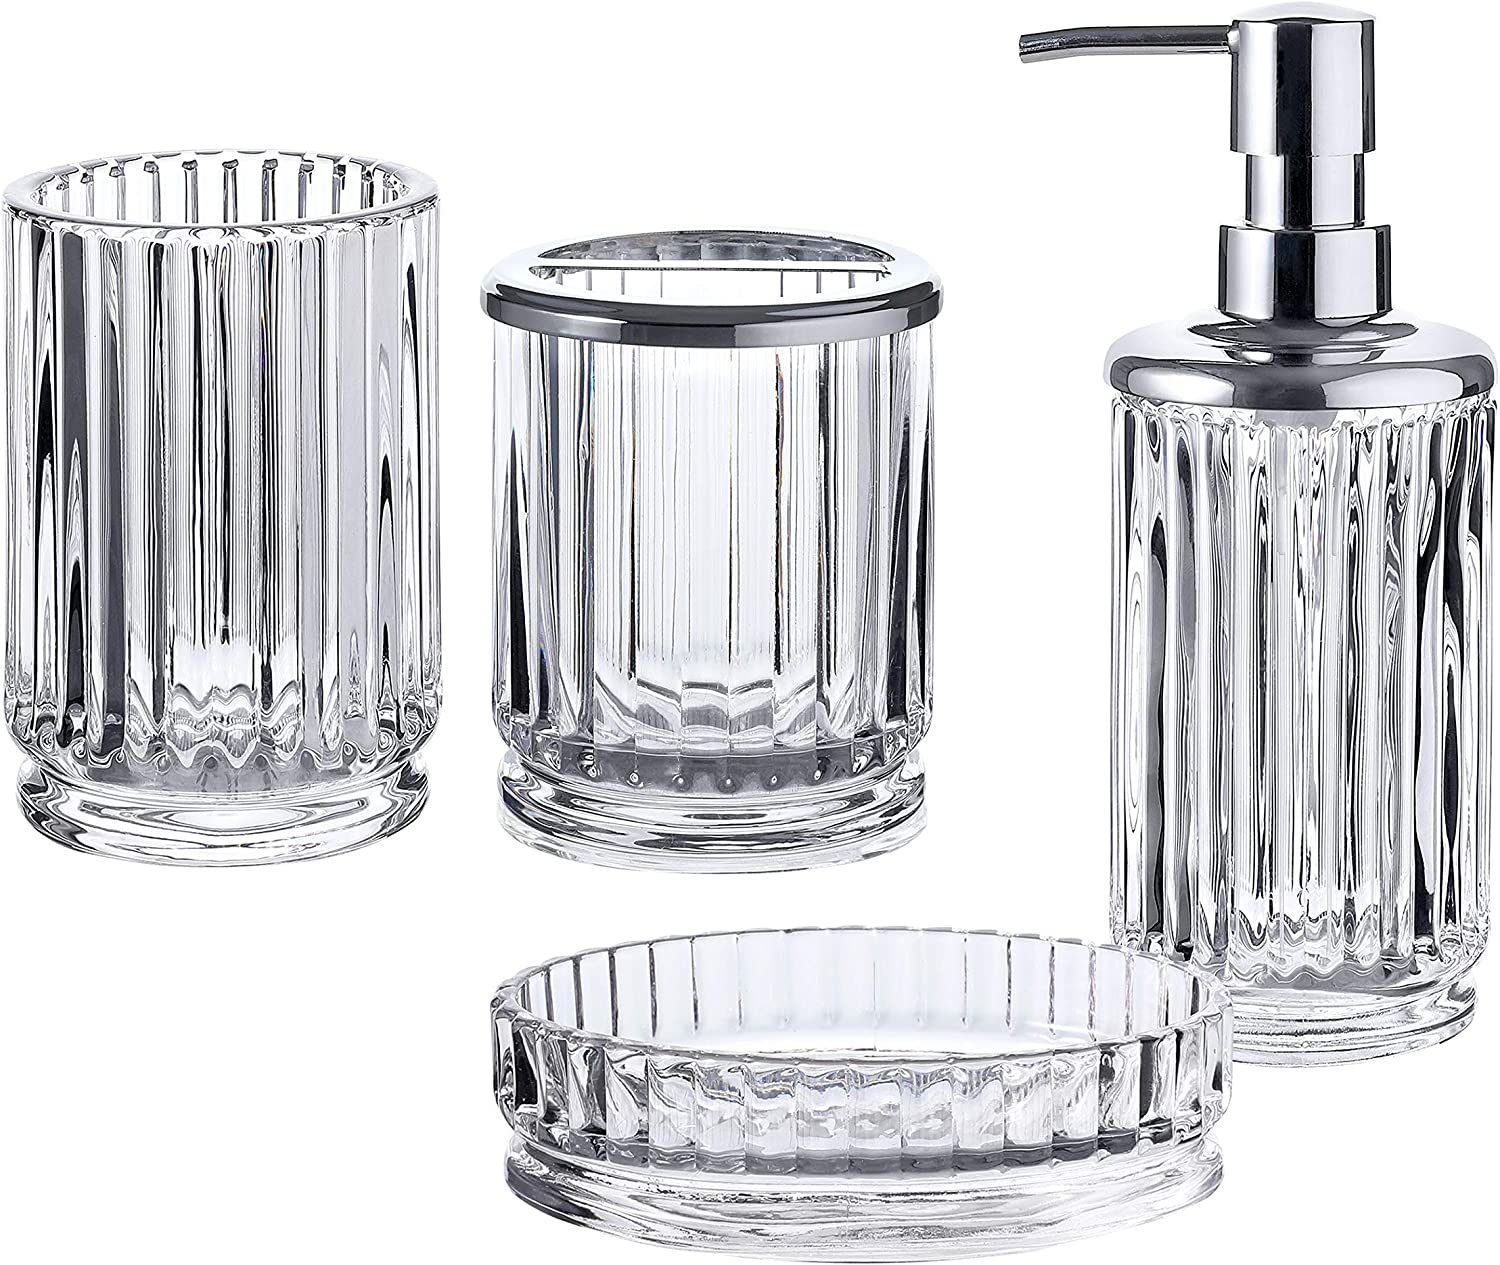 Amazon Com Whole Housewares Bathroom Accessories Set 4 Piece Glass Bath Accessory Completes With Soap Lotion Dispenser Toothbrush Holder Tumbler And Soap Dish Clear Home Kitchen